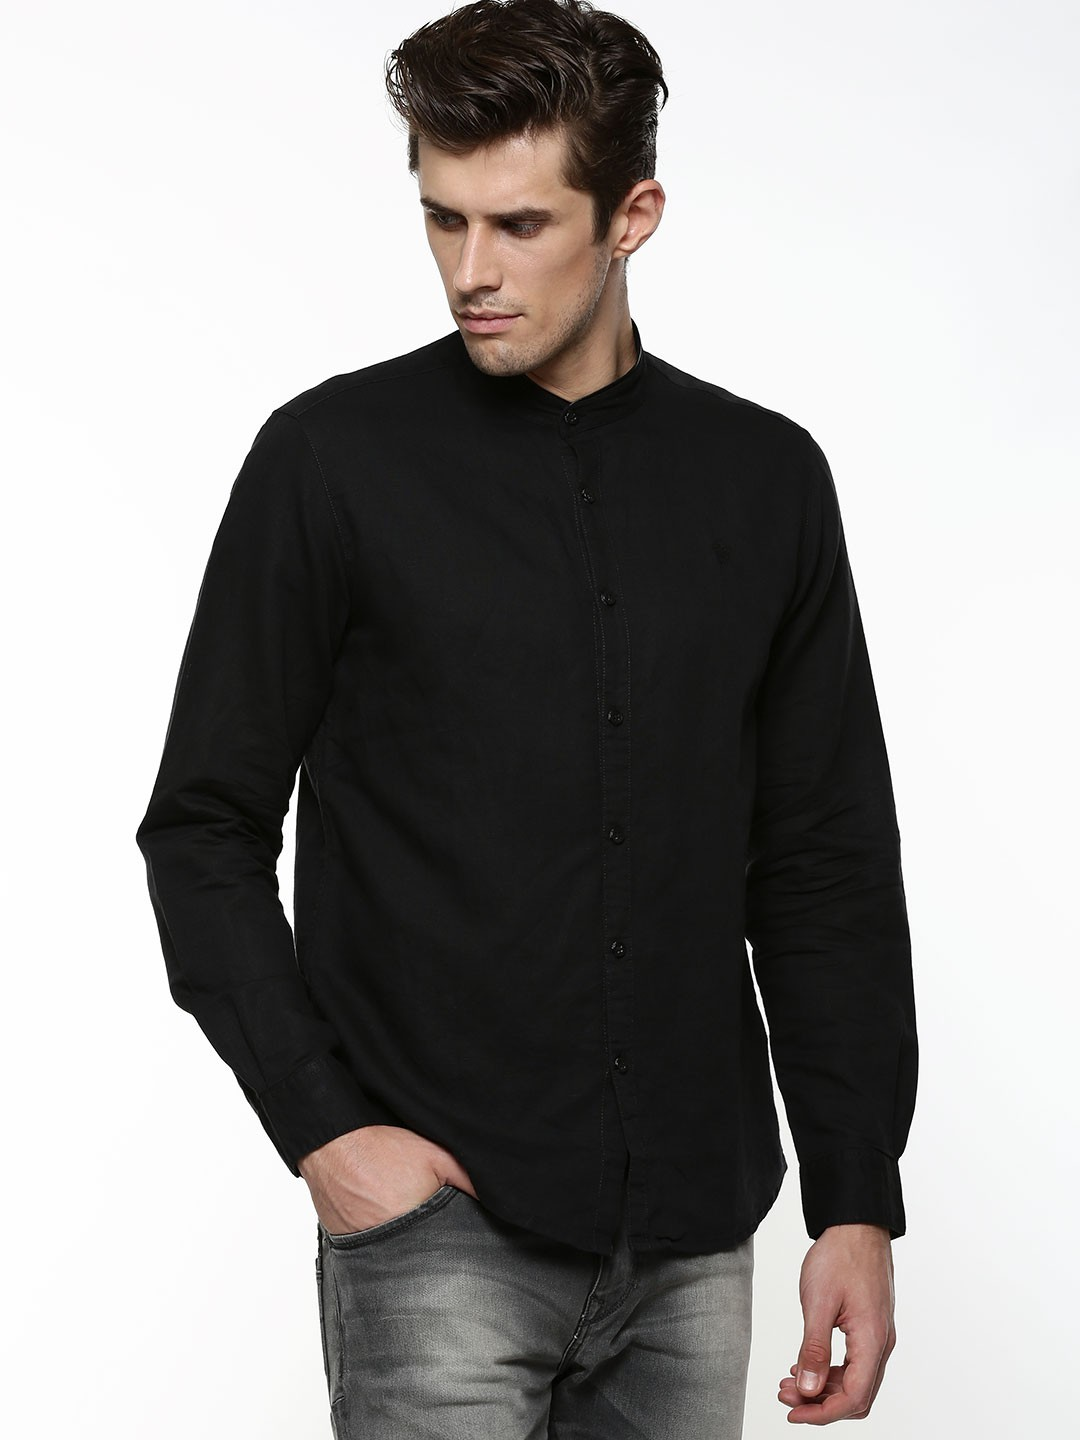 Find mandarin black shirt at ShopStyle. Shop the latest collection of mandarin black shirt from the most popular stores - all in one place.